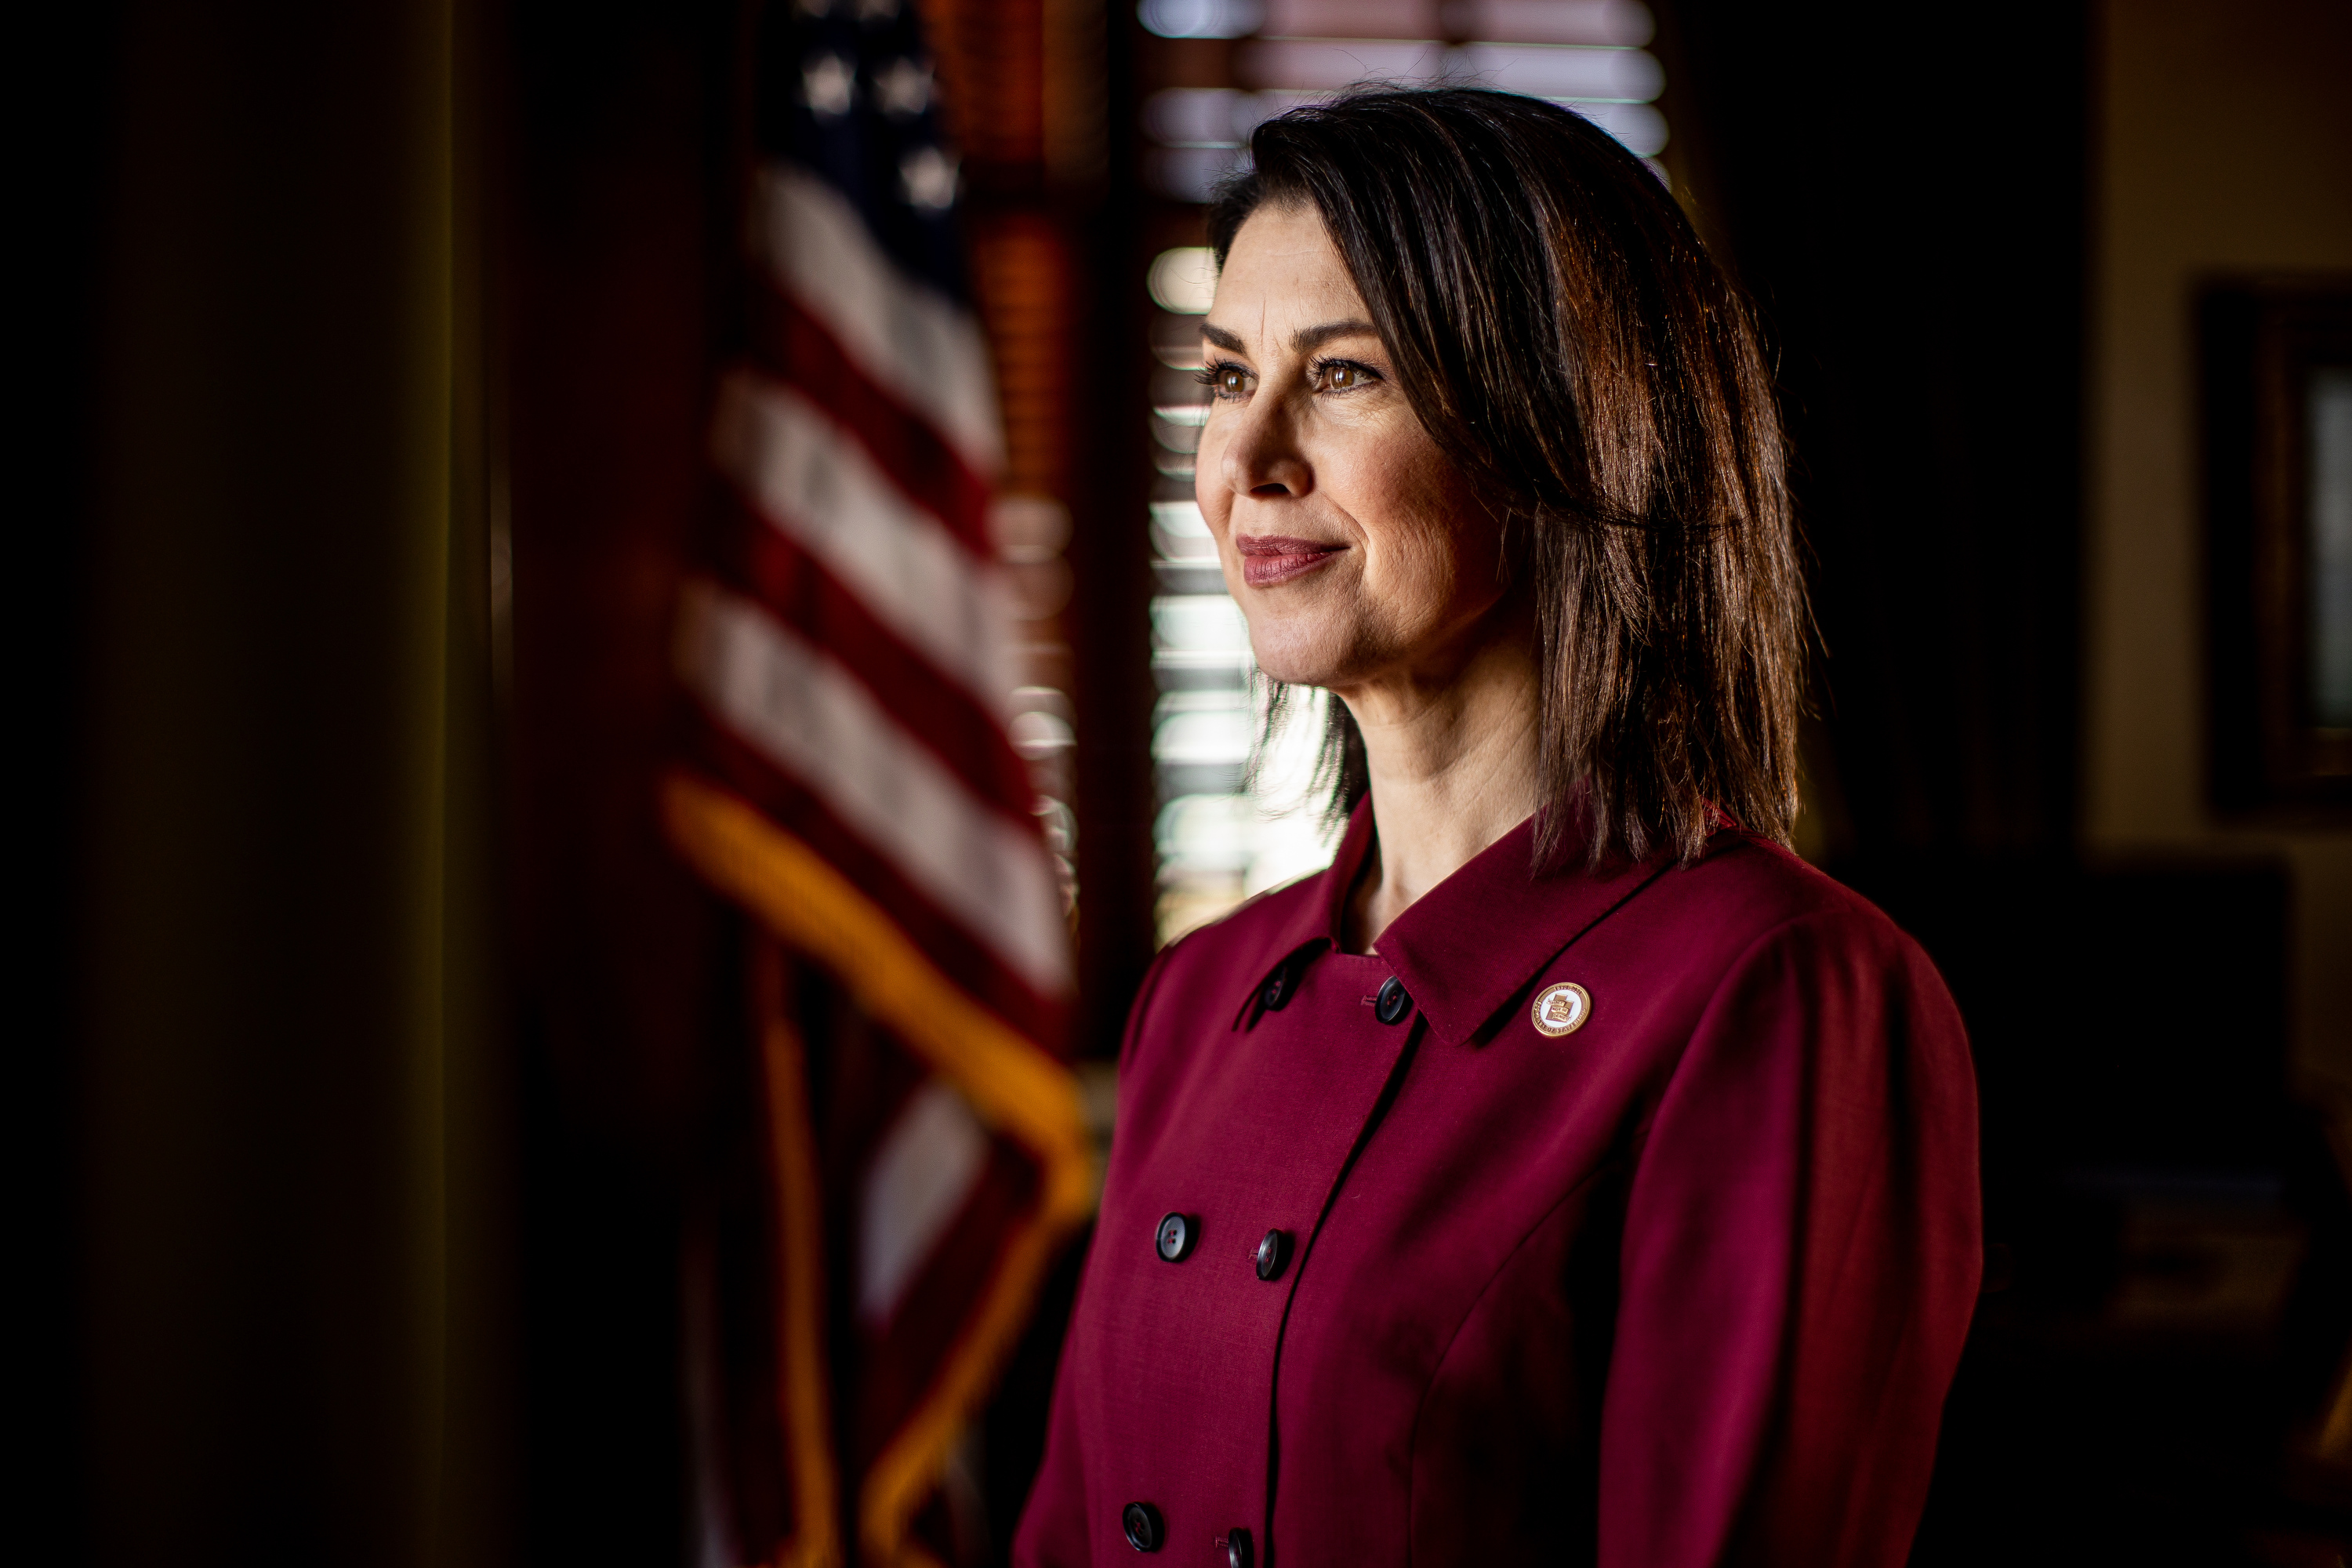 Lt. Gov. Deidre Henderson poses for a photo in her office at the Capitol in Salt Lake City on Friday, March 19, 2021.